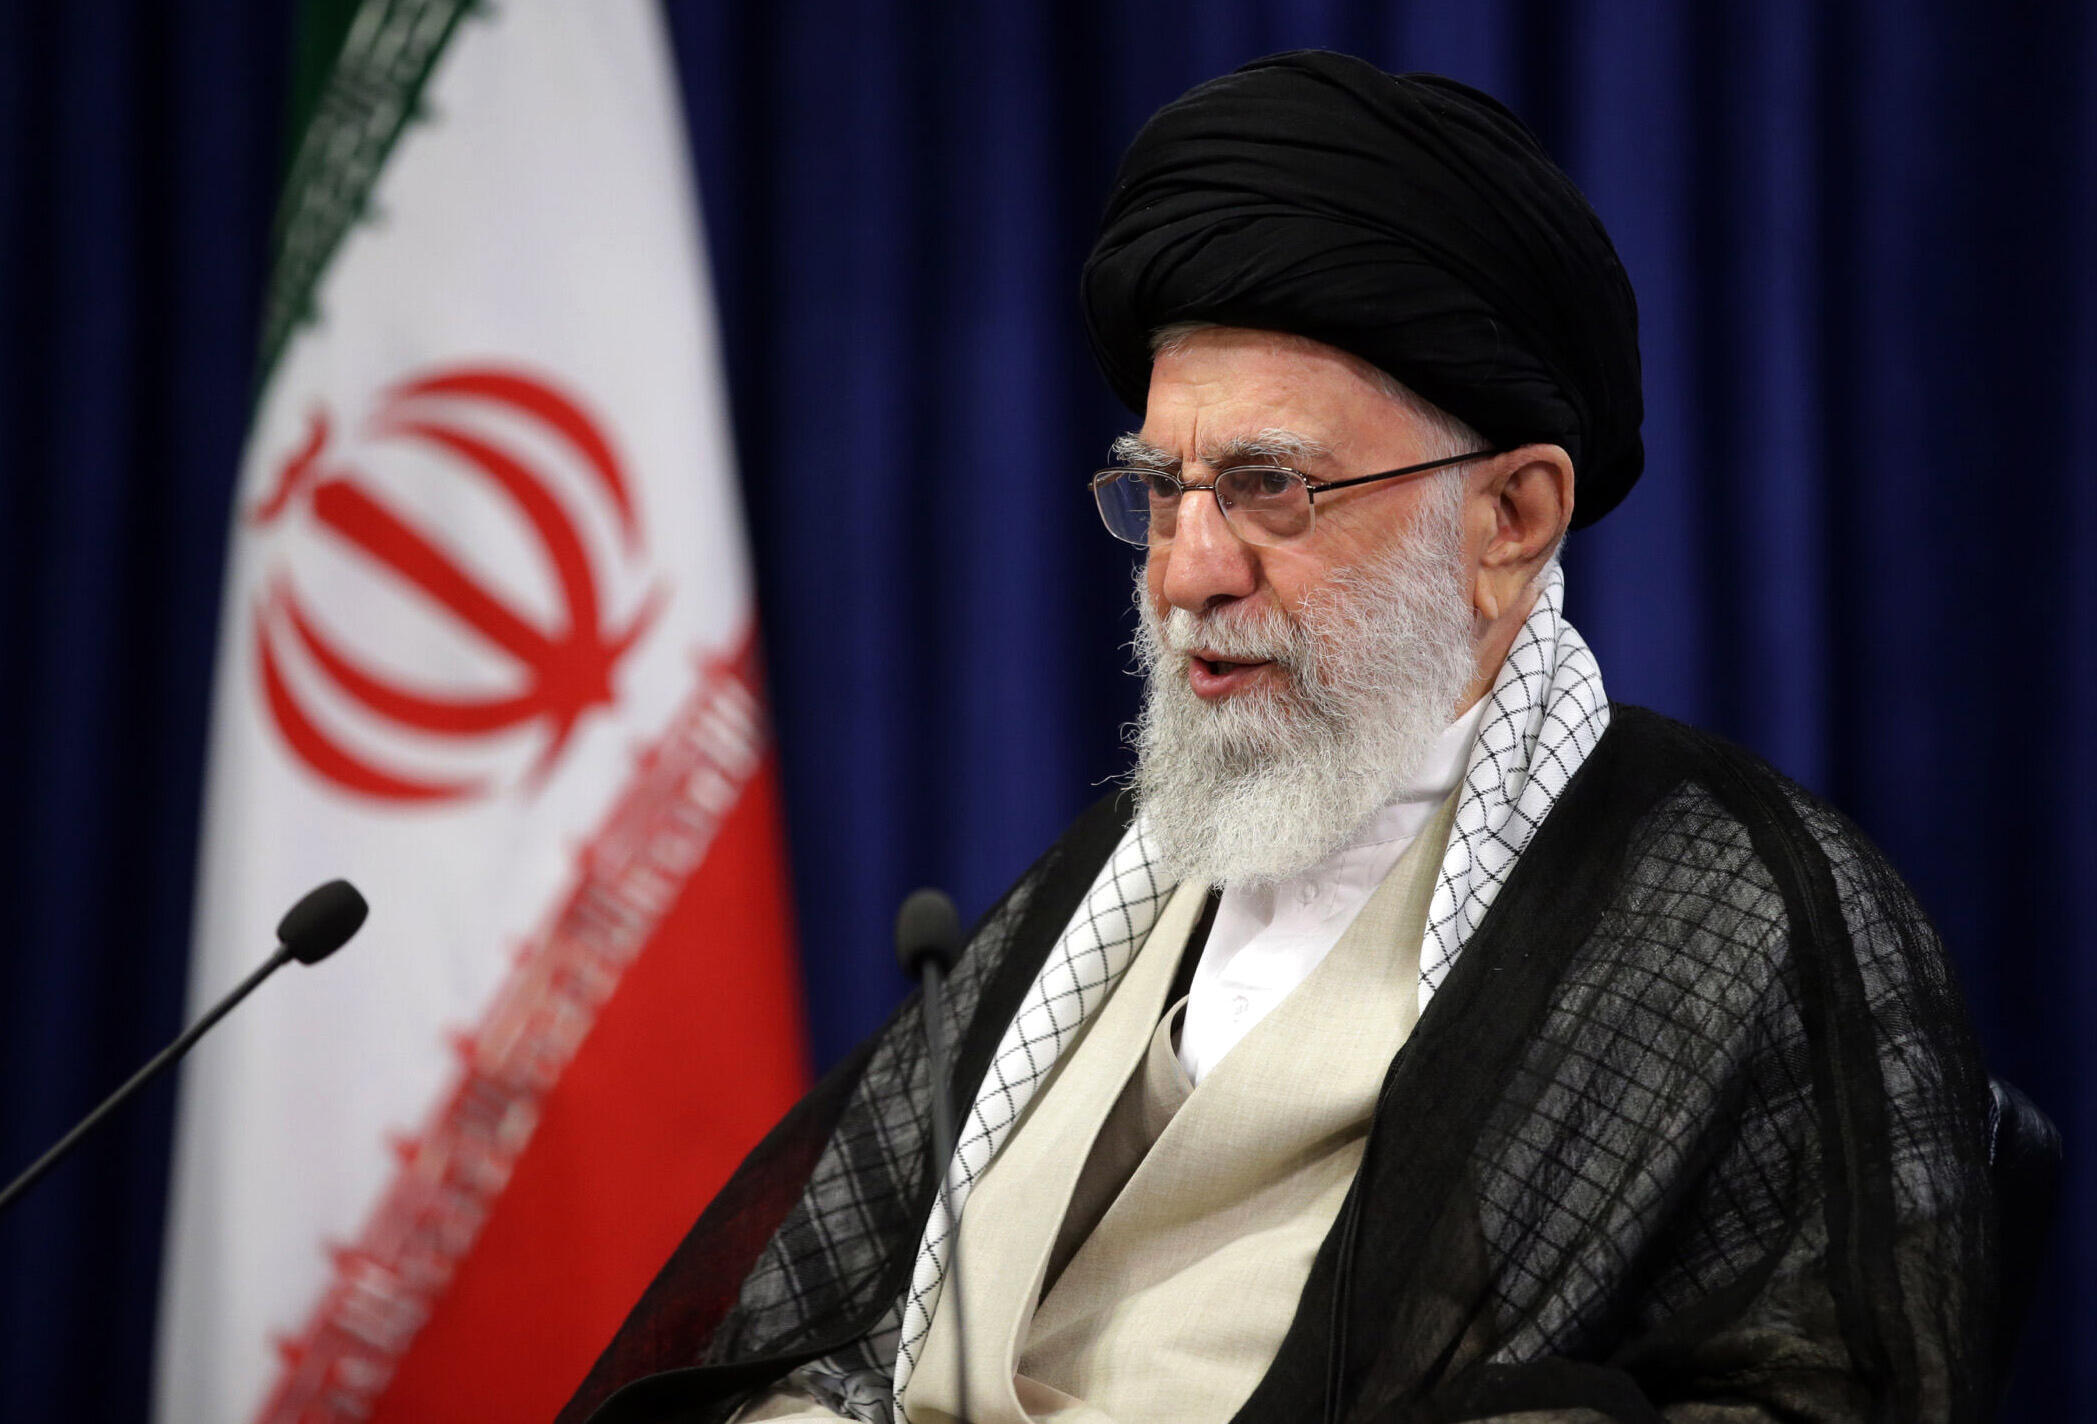 Iran's Supreme Leader Ayatollah Ali Khamenei speaks on television on Friday, in a handout picture provided by his office